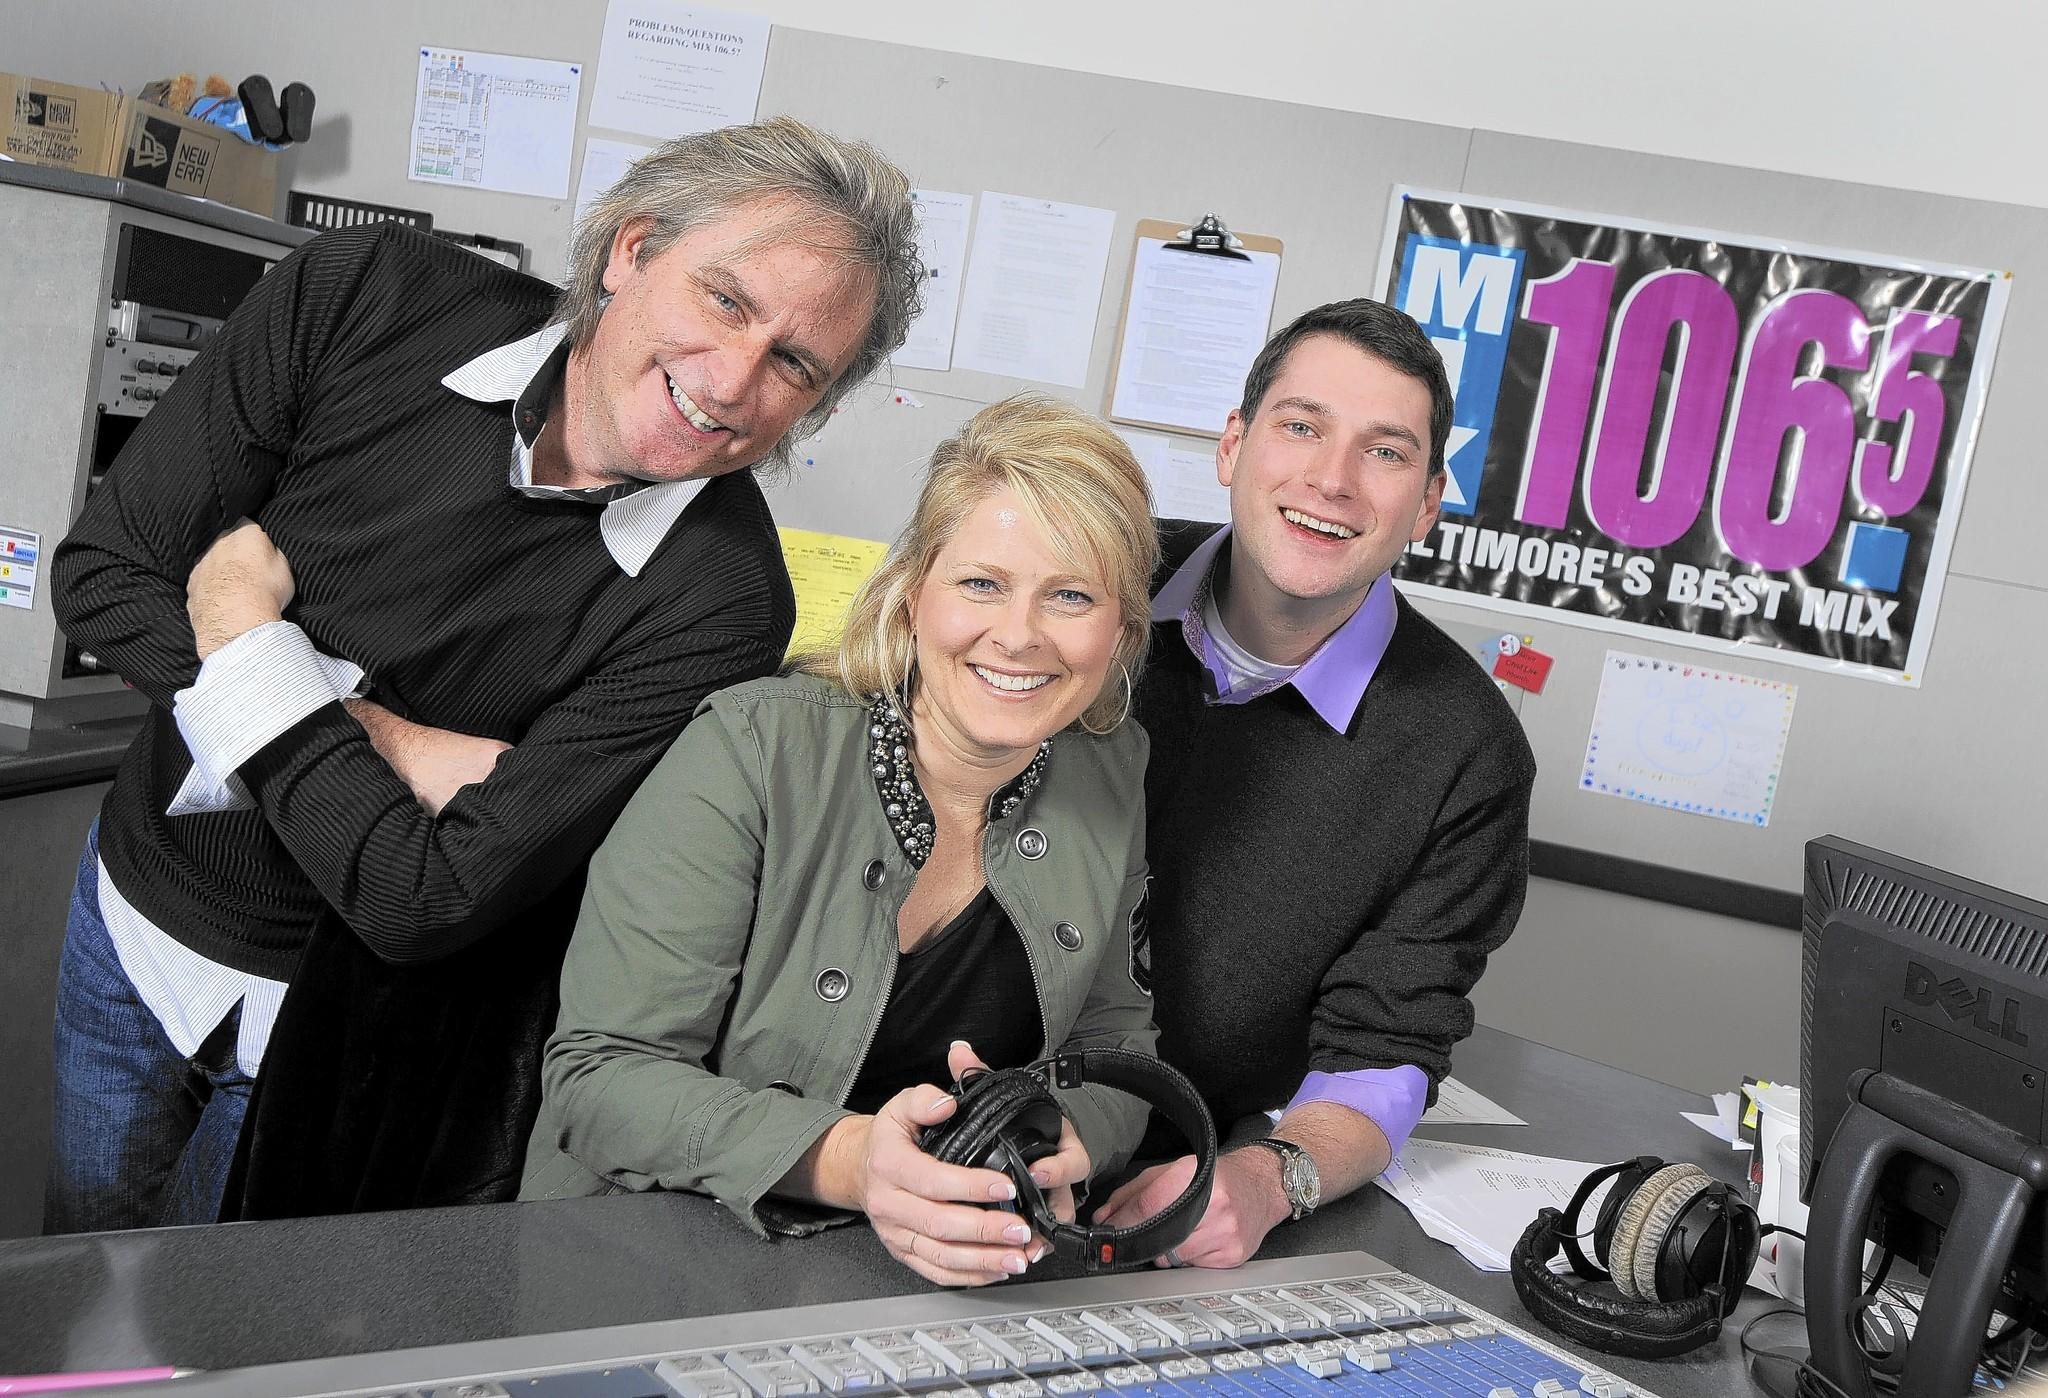 Mix 106.5 morning radio personality Maria Dennis, who announced Thursday that she has been diagnosed with leukemia, appears with co-hosts Jon Boesche, left, and Reagan Warfield.